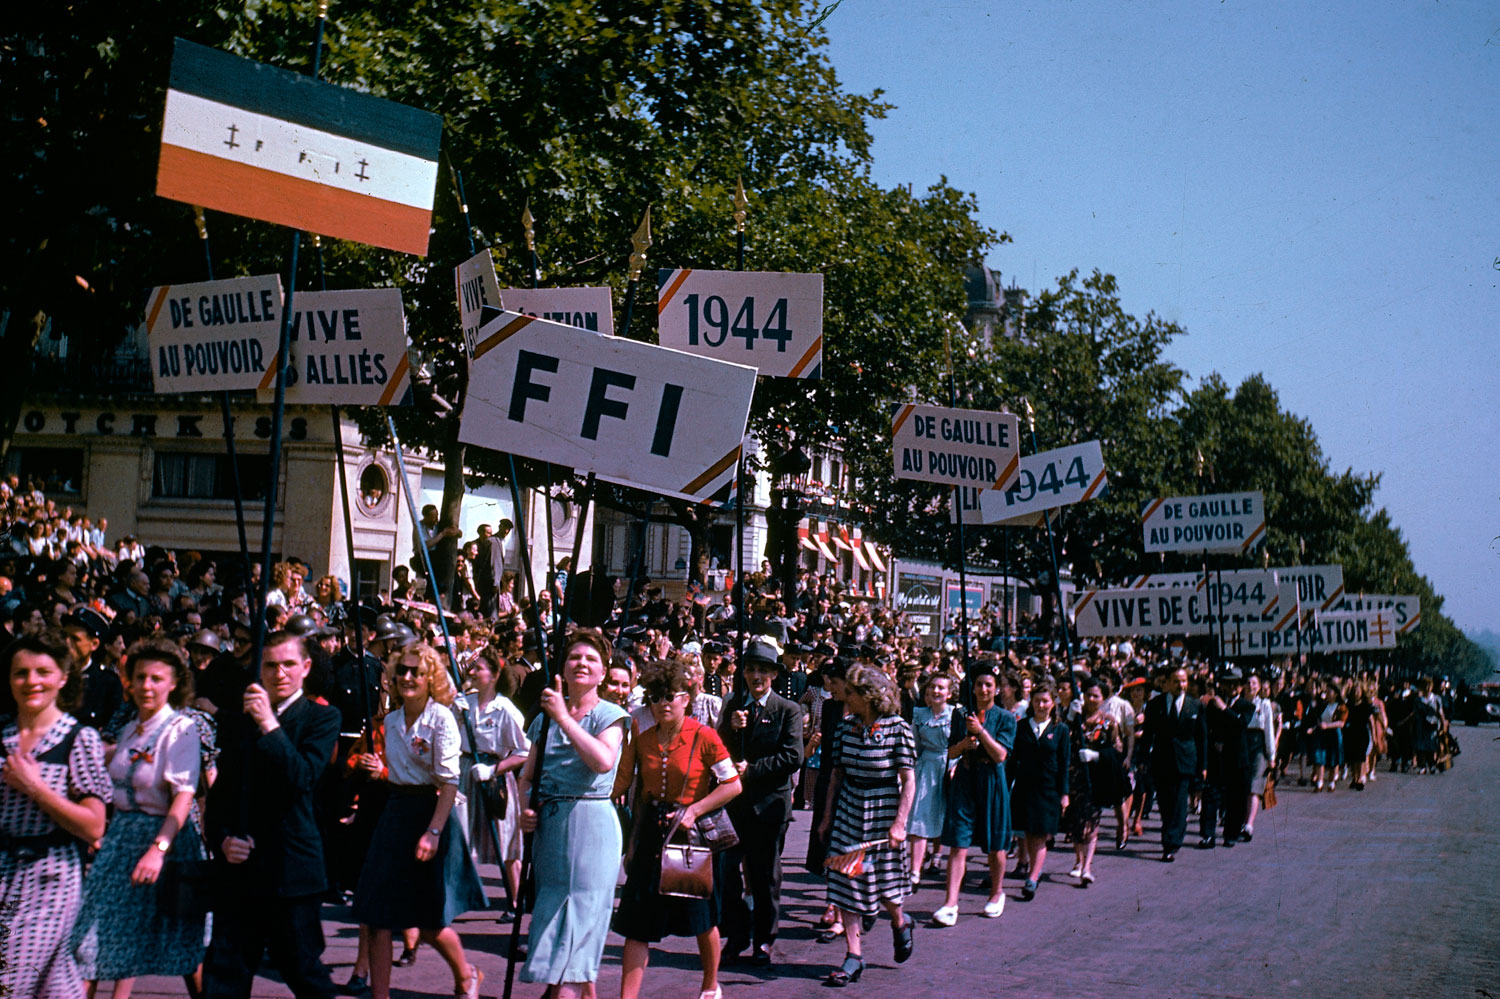 Celebrations in Paris after the liberation of the city, August 1944.